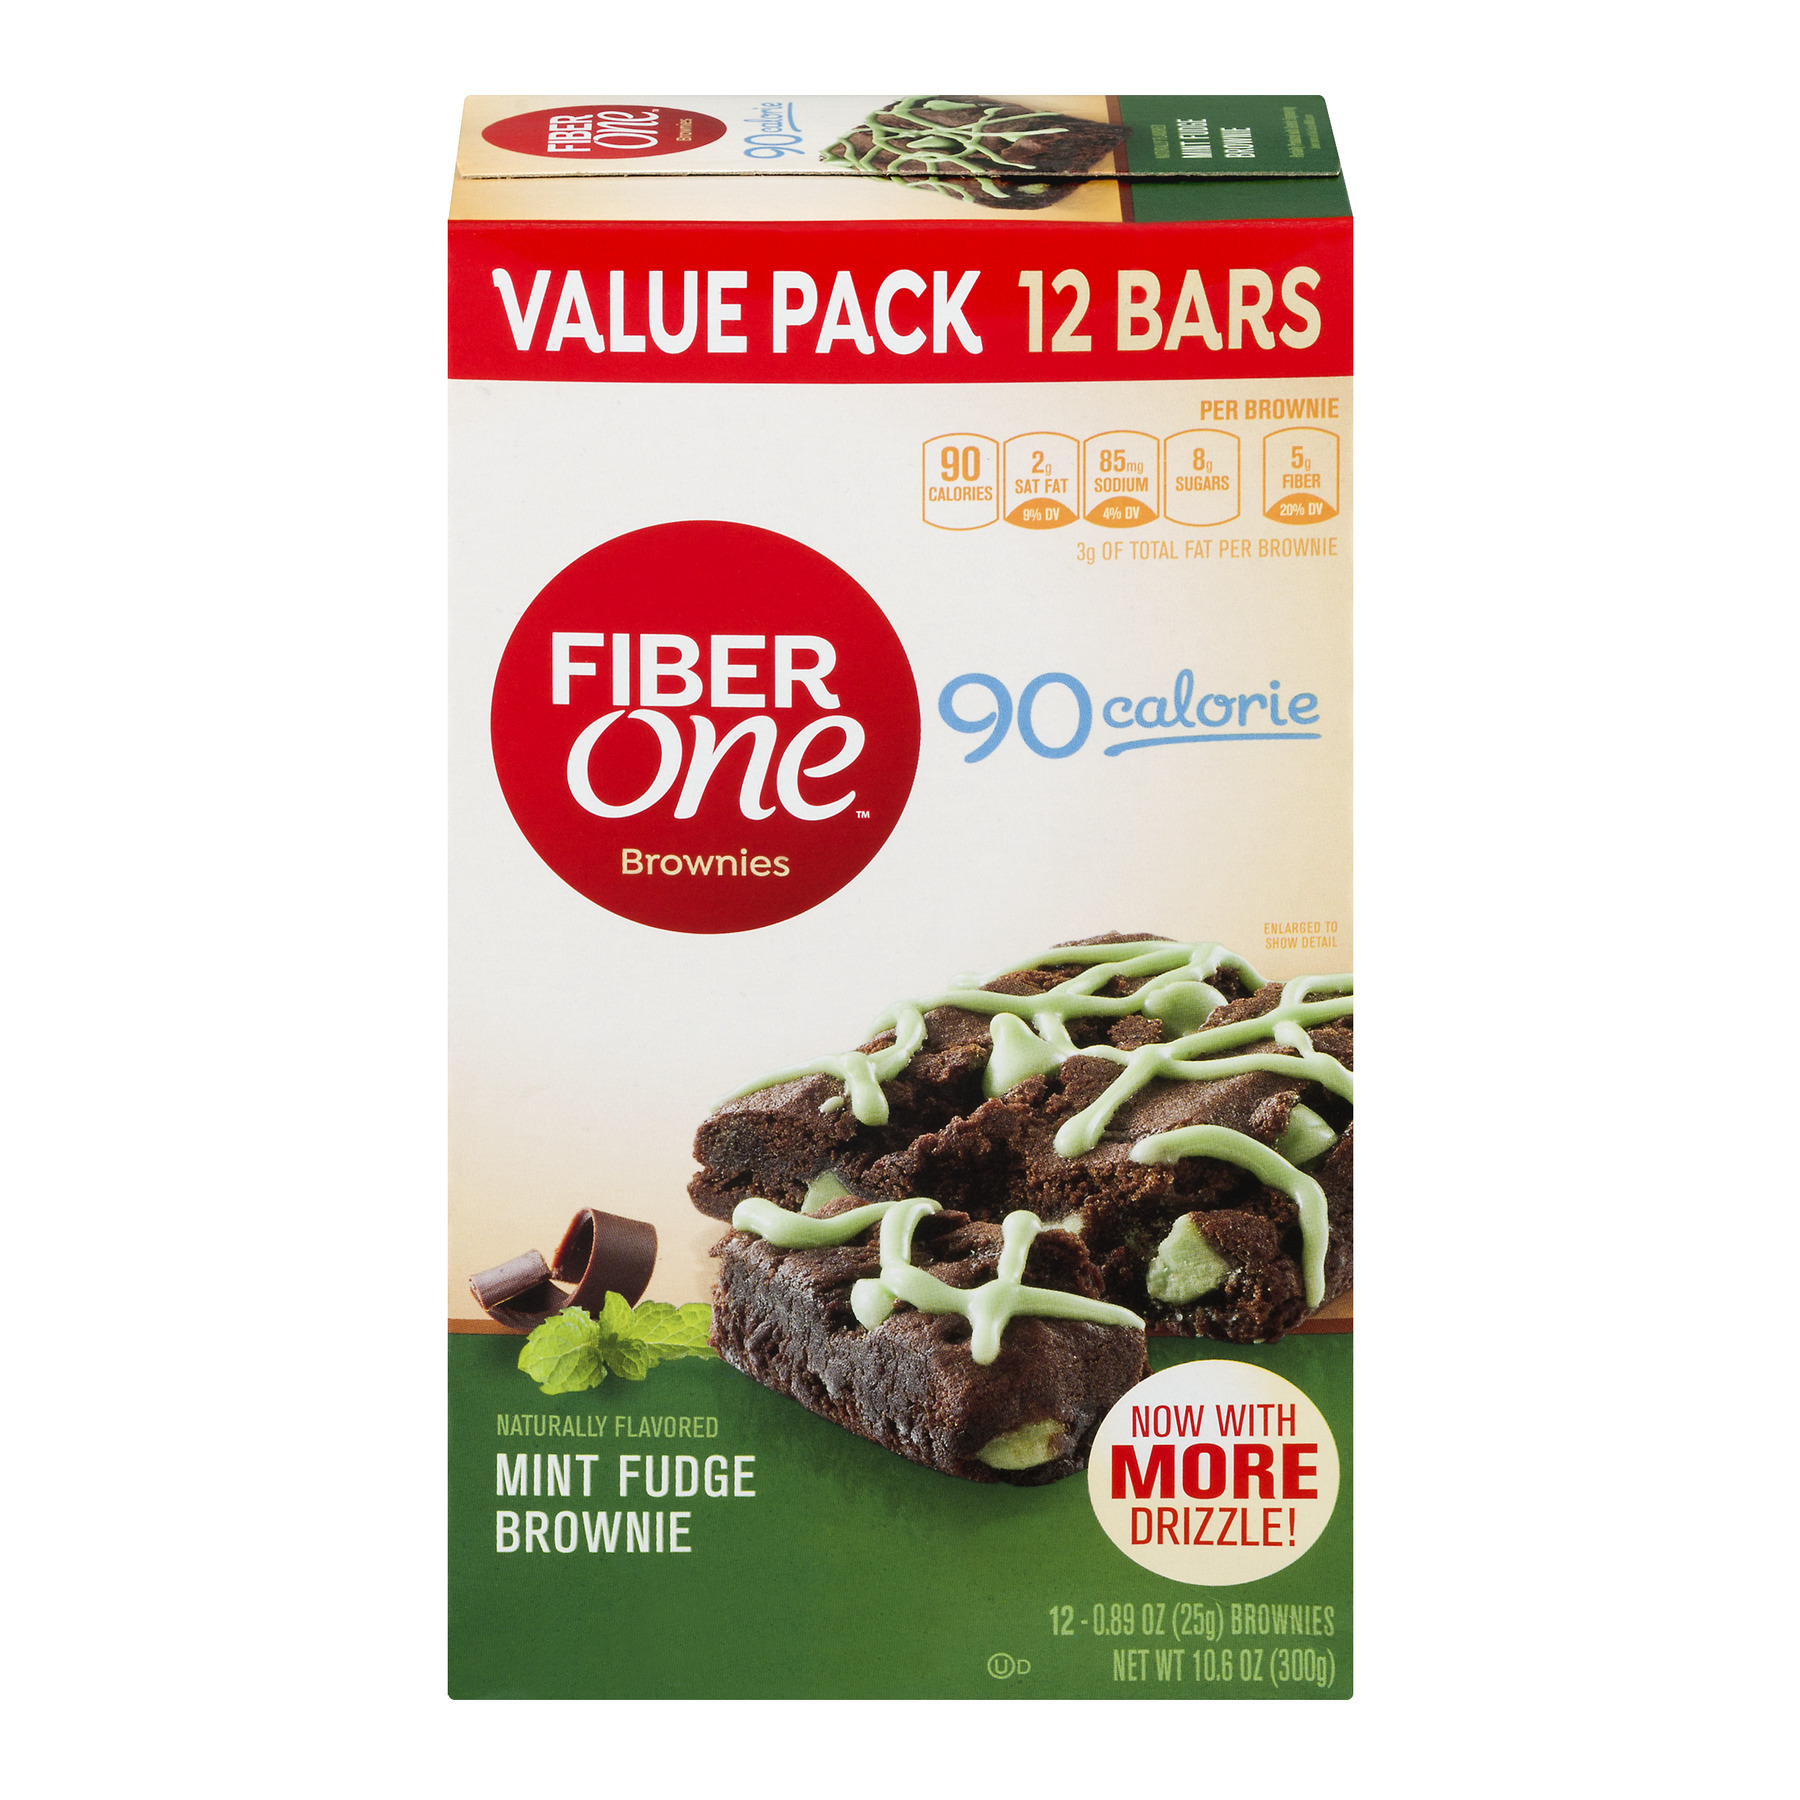 Fiber One 90 Calorie Mint Fudge Brownies 12 ct Box